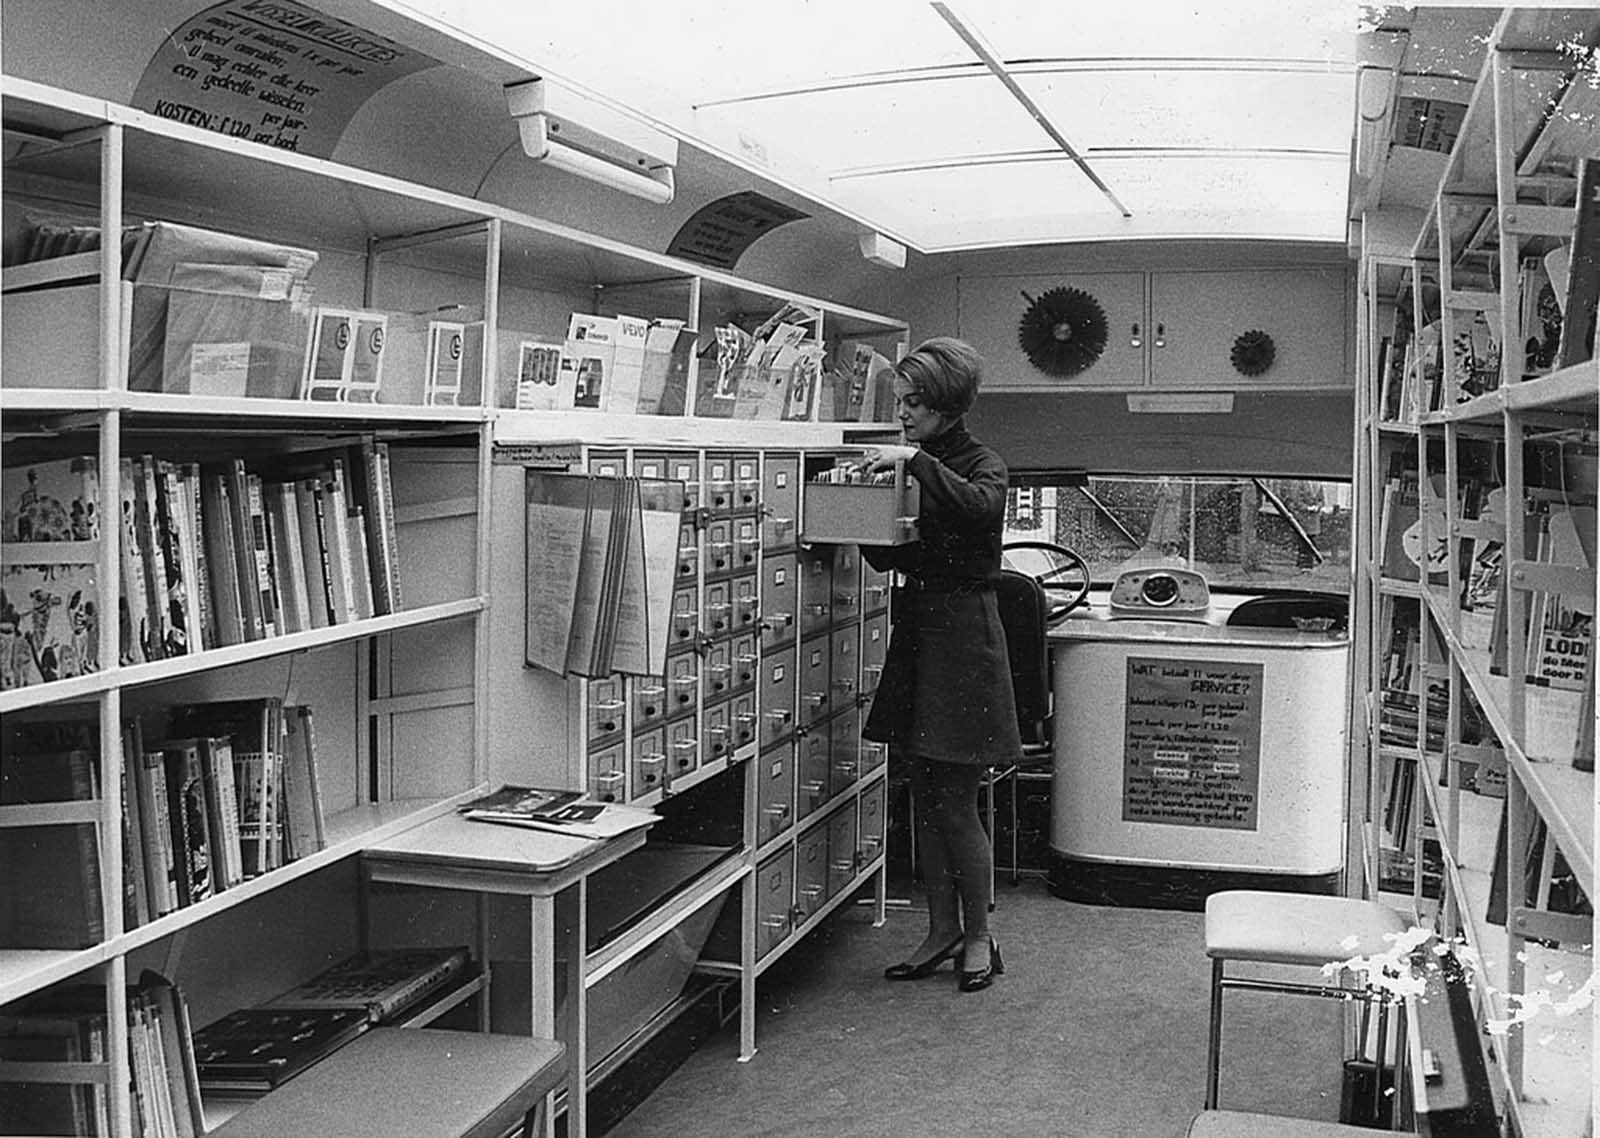 Inside a bookmobile, date unknown.